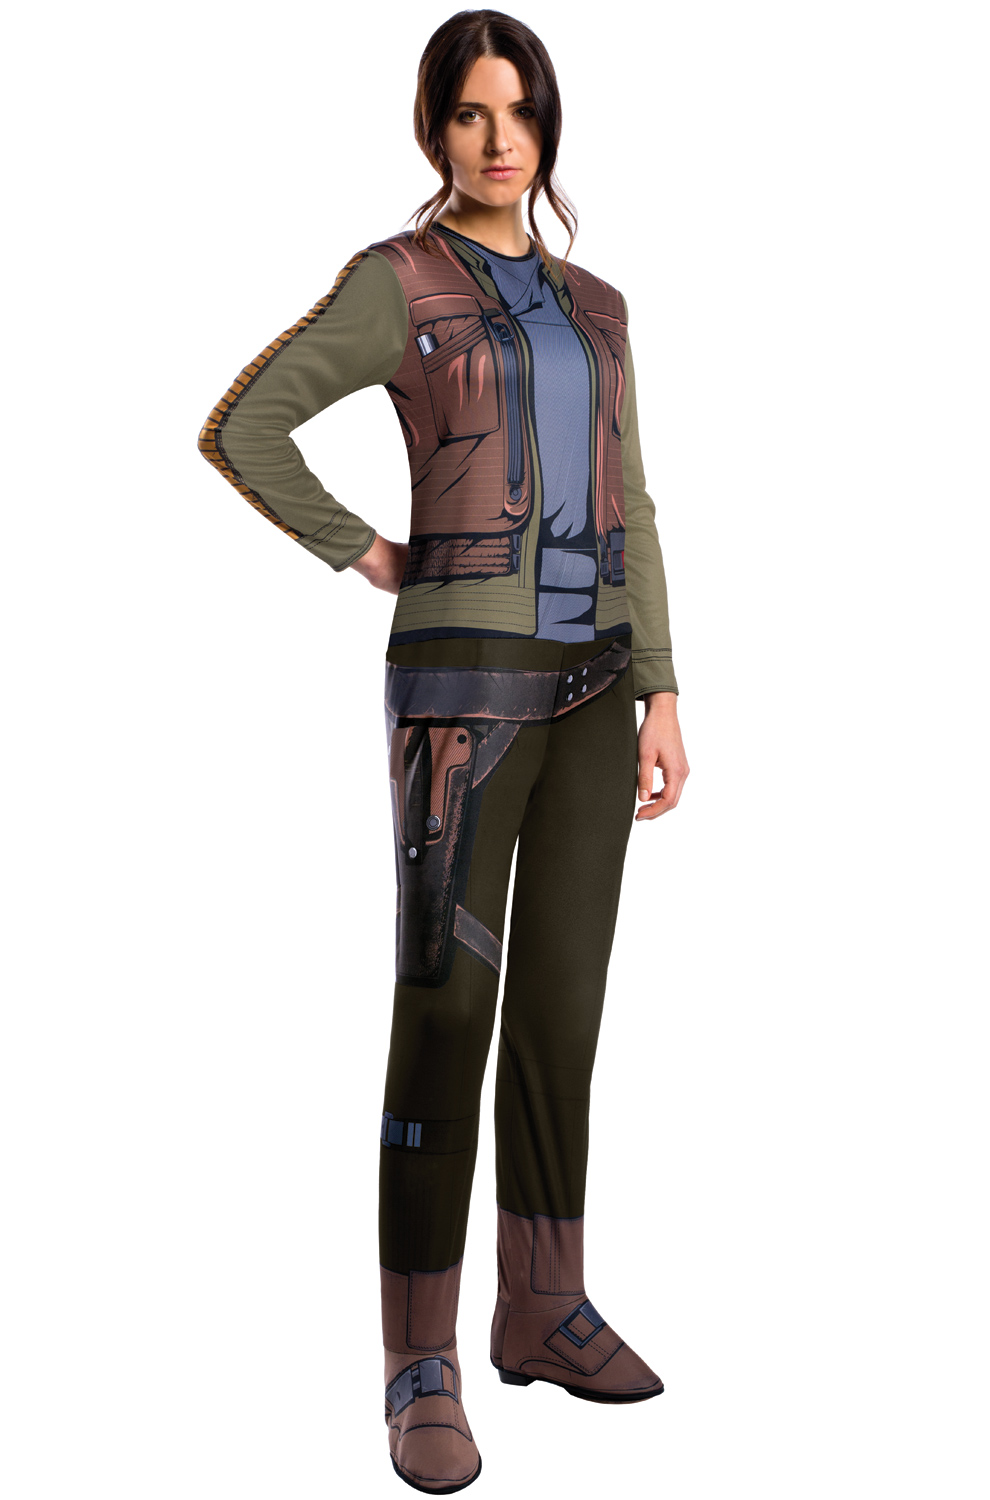 Rogue One Jyn Erso Adult Costume - PureCostumes.com